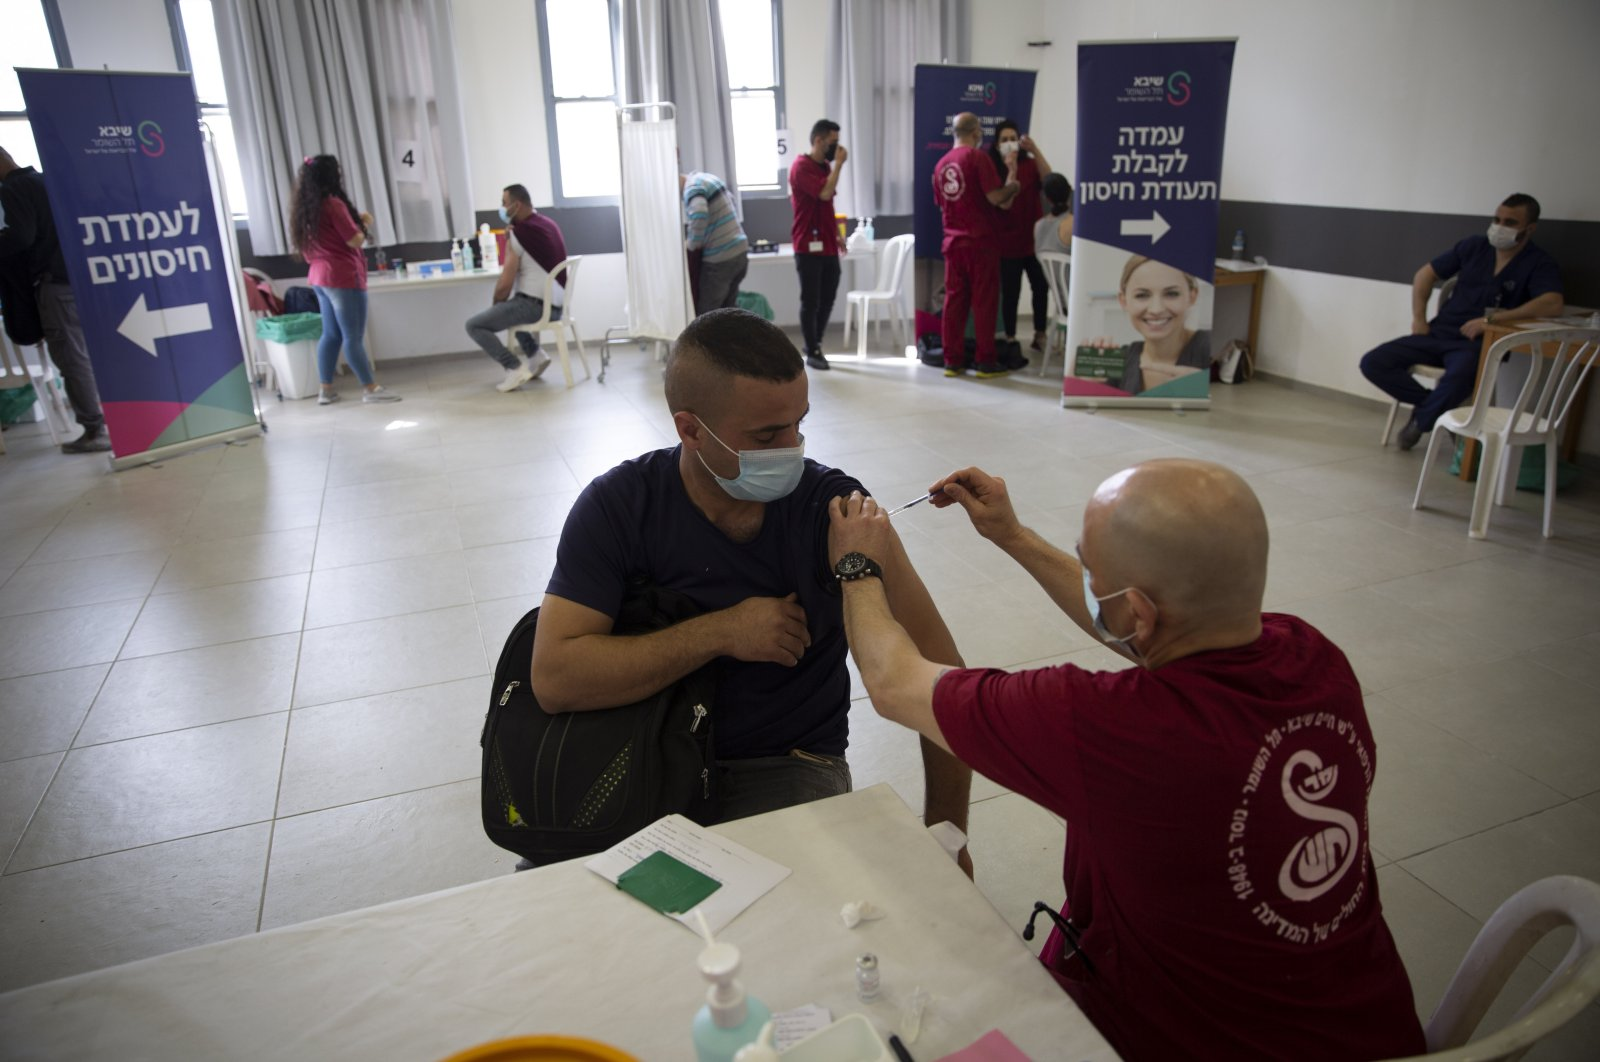 A Palestinian laborer who works in Israel receives his first dose of the Moderna COVID-19 vaccine at a coronavirus vaccination center set up at the Taiba checkpoint crossing between Israel and the West Bank, near the West Bank town of Tulkarem, Monday, March 8, 2021. (AP Photo)